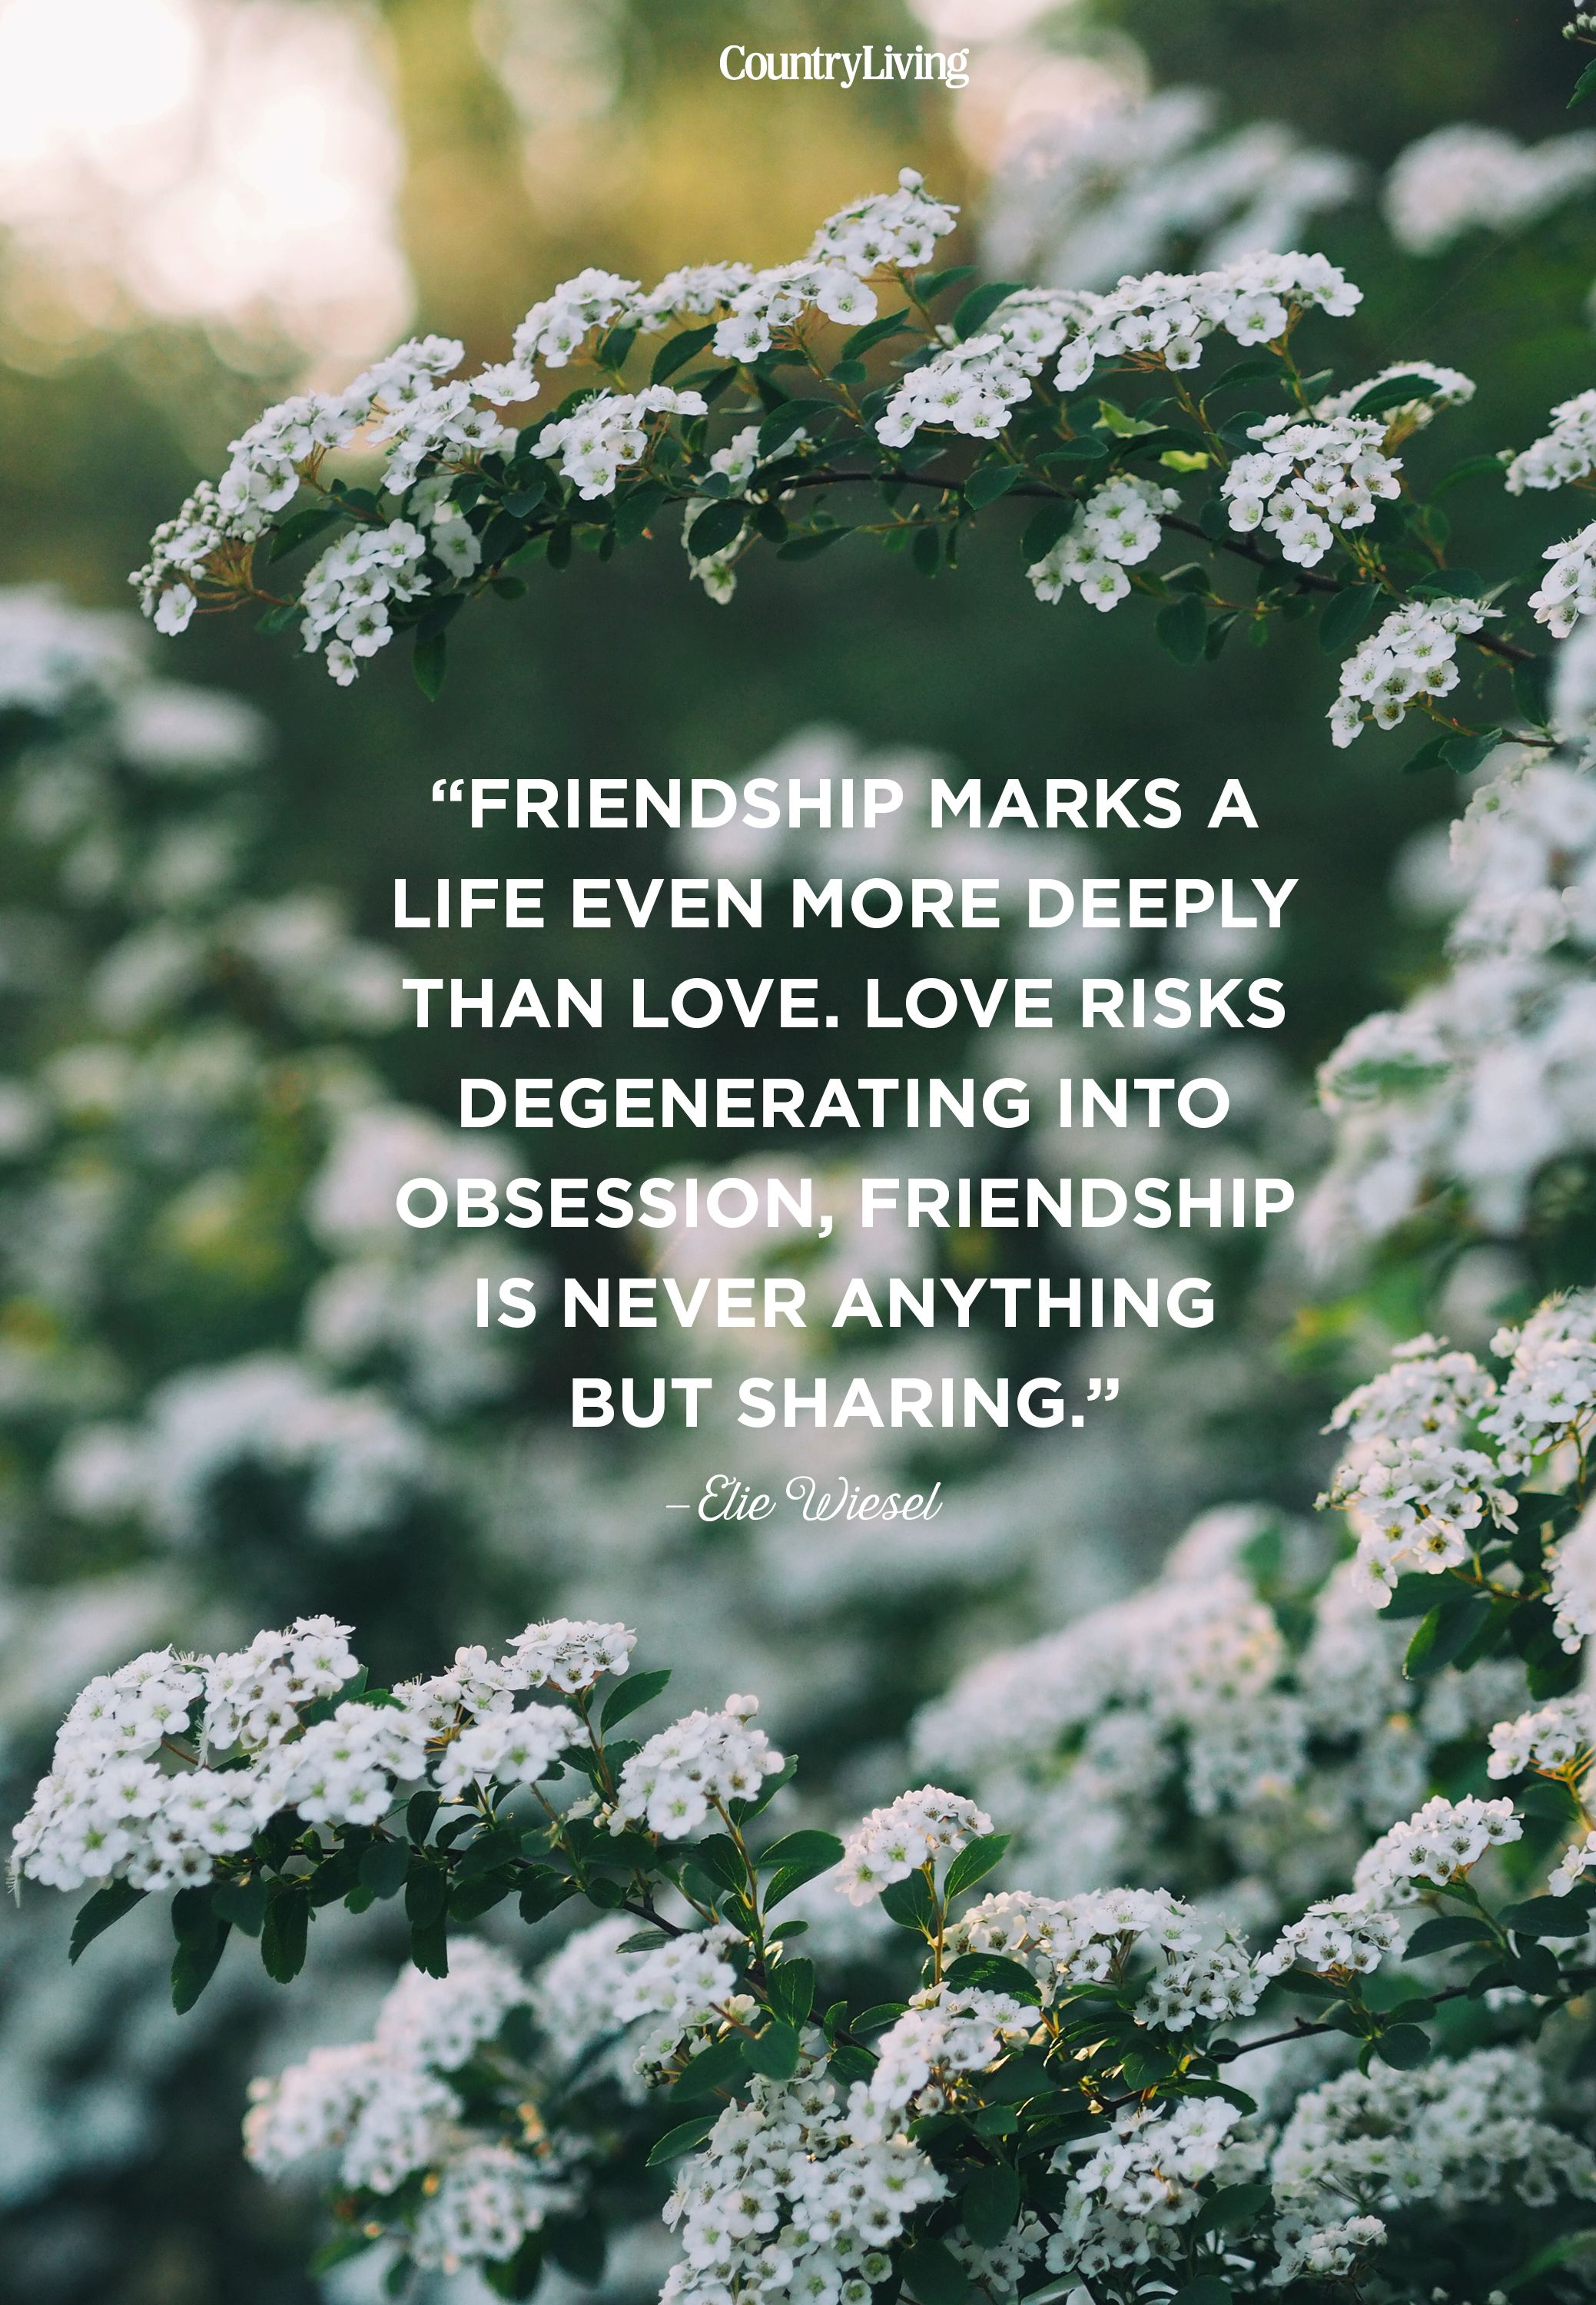 10 Cute Friendship Quotes - Short Sayings About Friendship